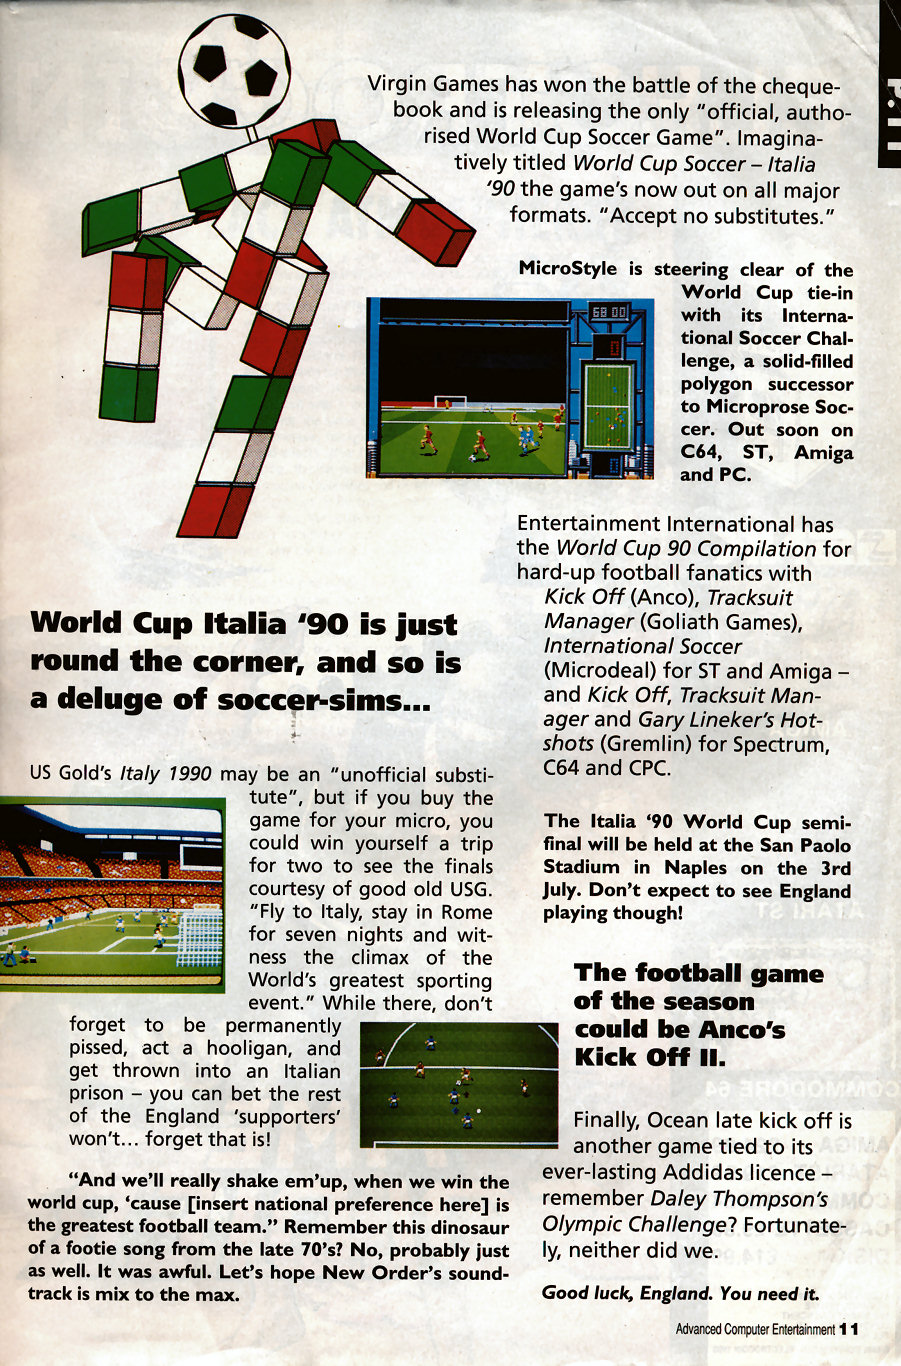 International_Soccer_ Challenges_ACE_June_1990 – Games That